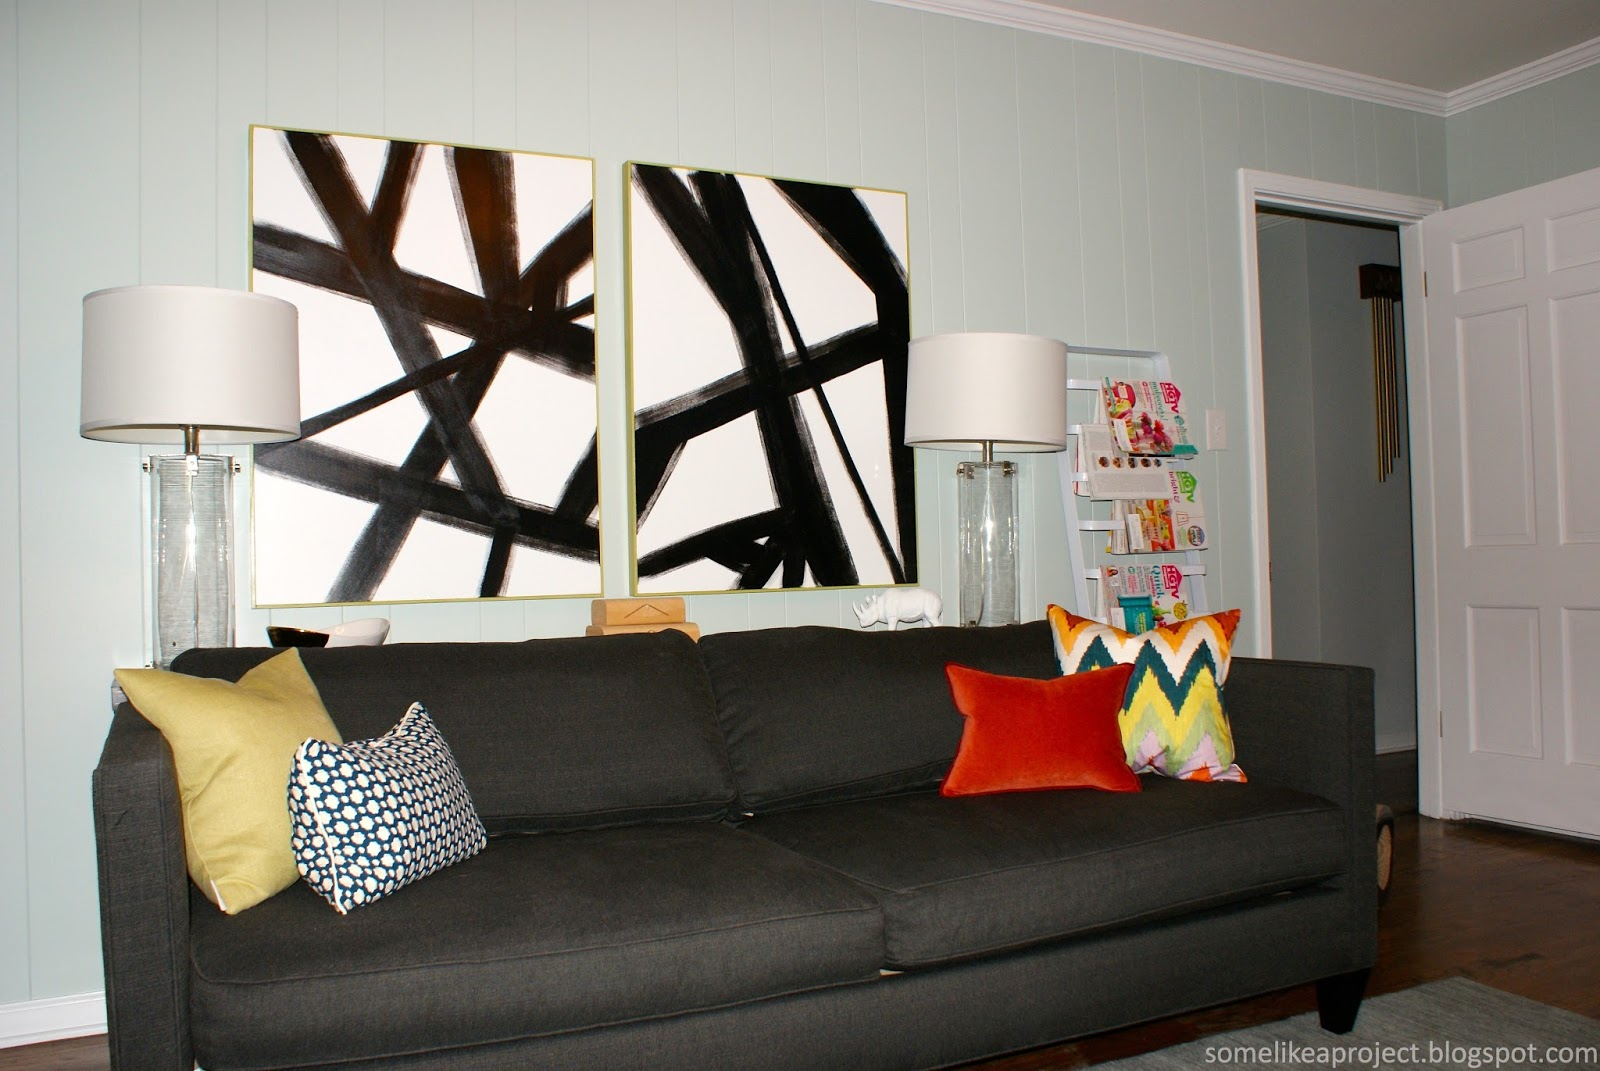 & Some Like A Project: Large DIY Black u0026 White Abstract Art